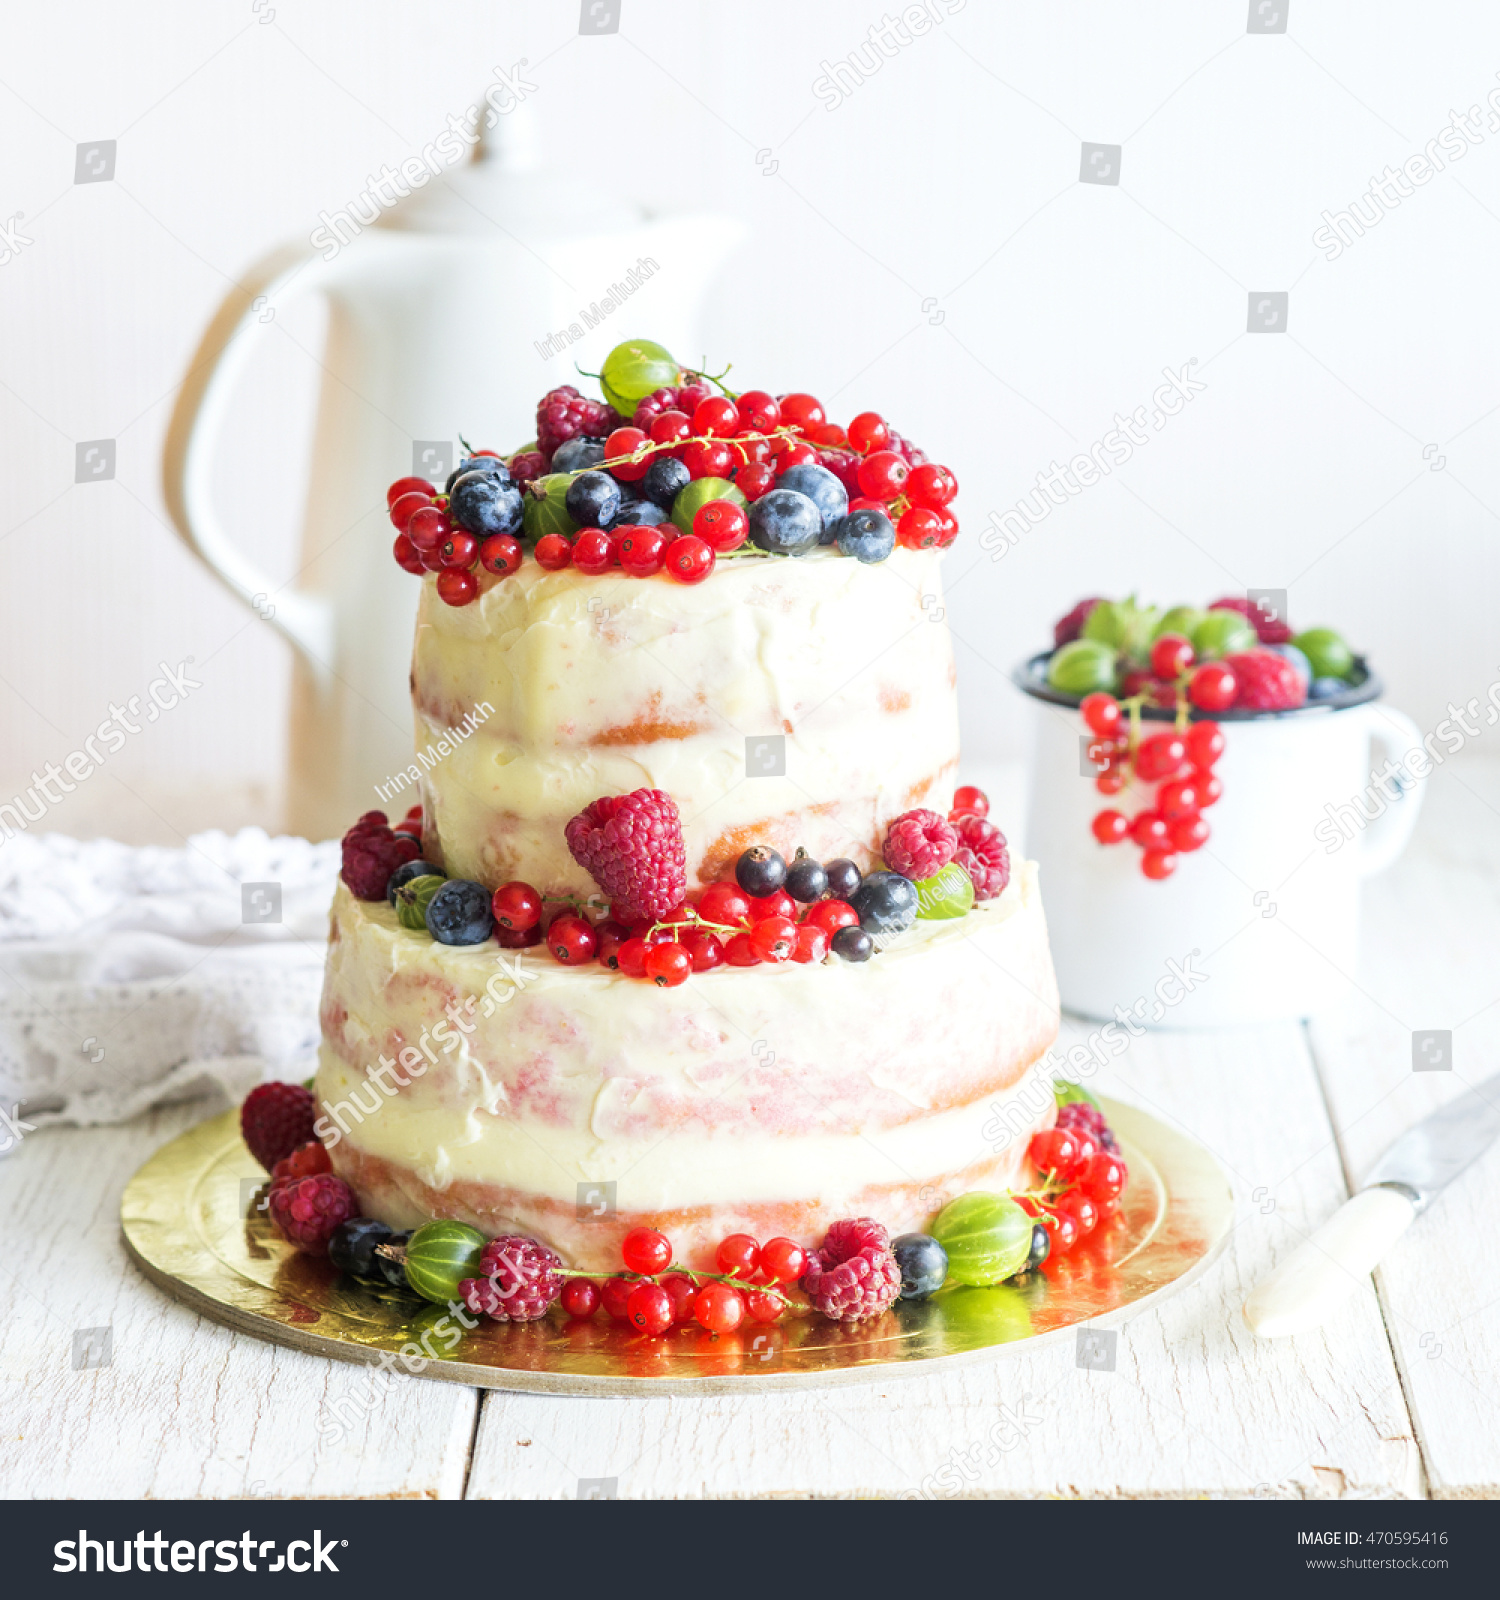 Two Tiered White Semi Naked Cake Stock Photo (Safe to Use) 470595416 ...